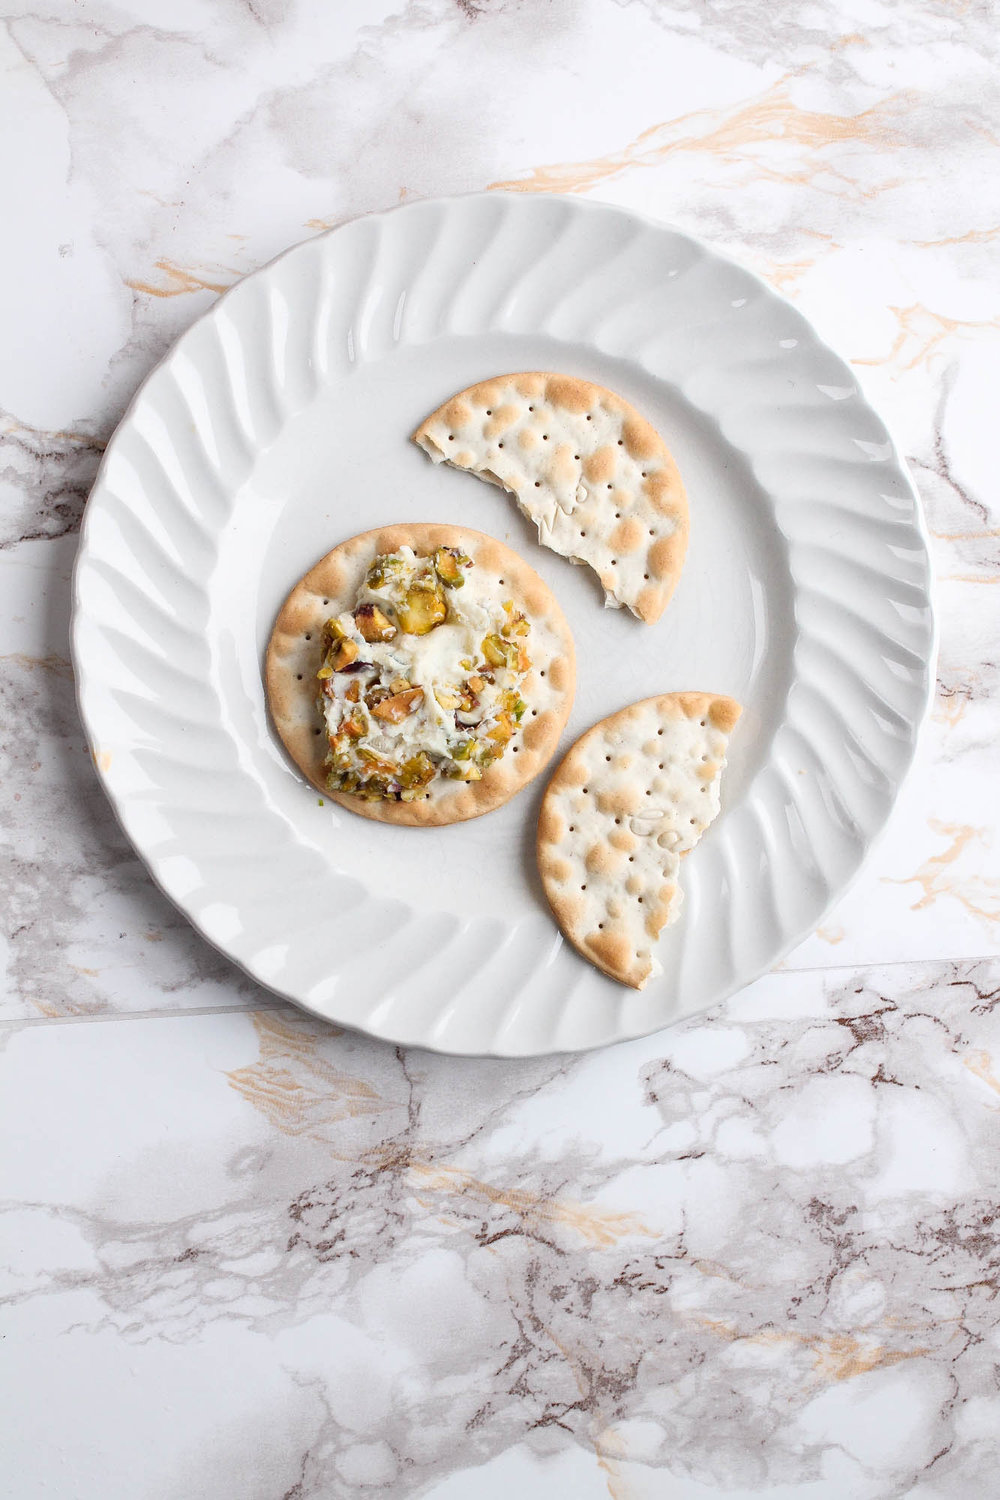 Stilton Pear Cheese Ball With Pistachios + Pink Peppercorns || This cheese ball is a perfect appetizer for a holiday party or dinner! Cream cheese, blue cheese, pear, pink peppercorns, pistachios + honey. Serve with crackers, bread, or vegetables. || creamandhoney.ca